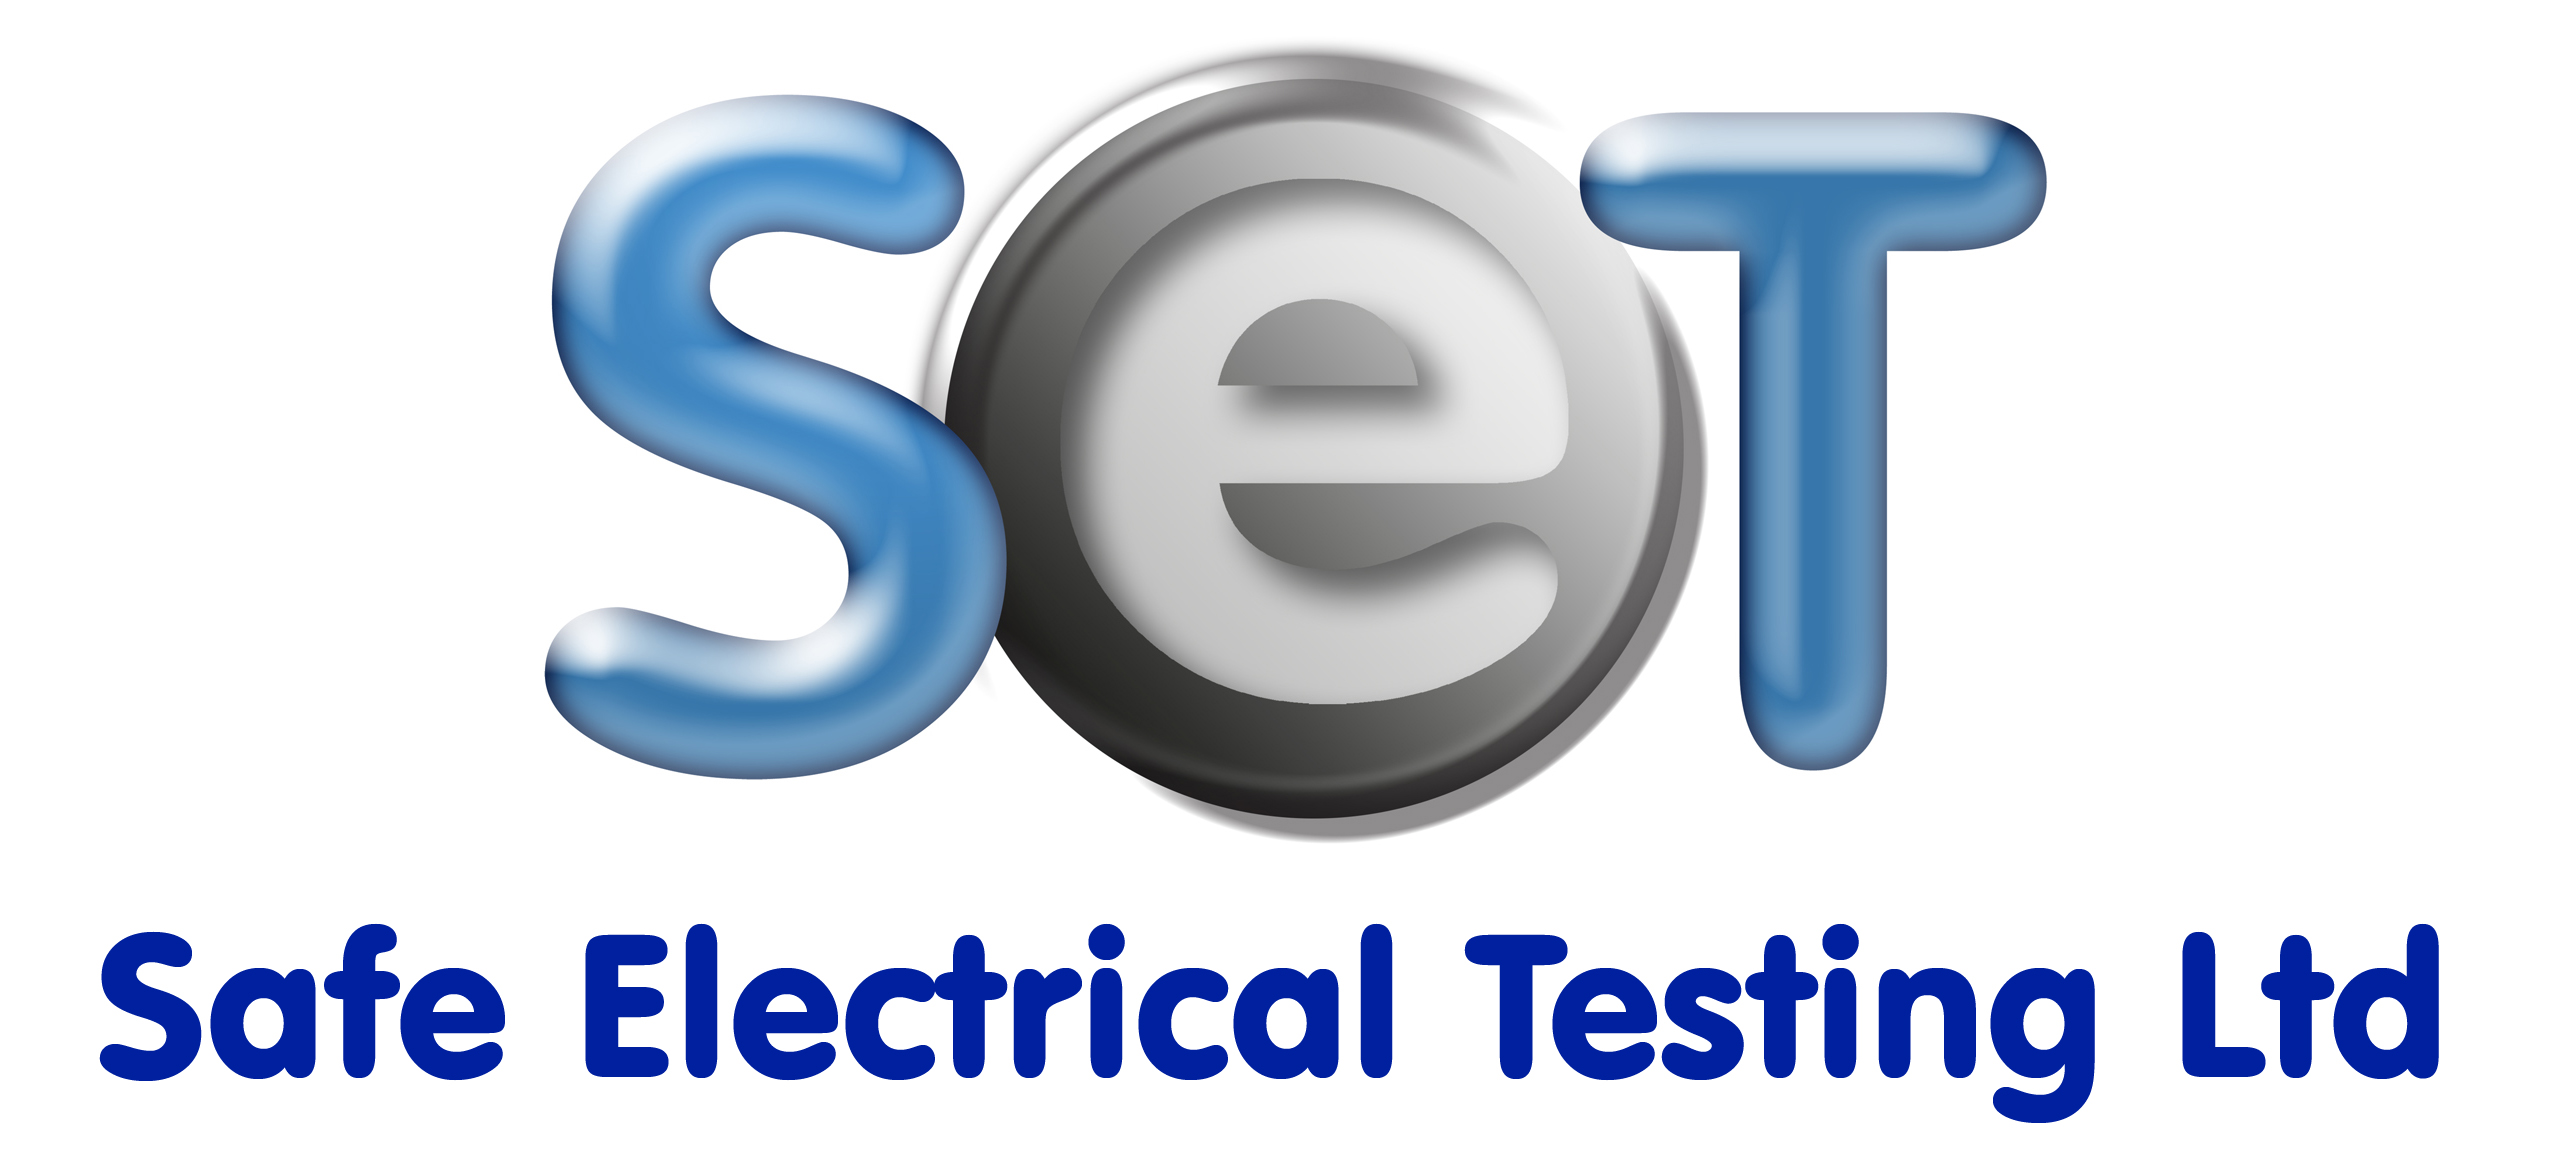 Safe Electrical Testing Ltd